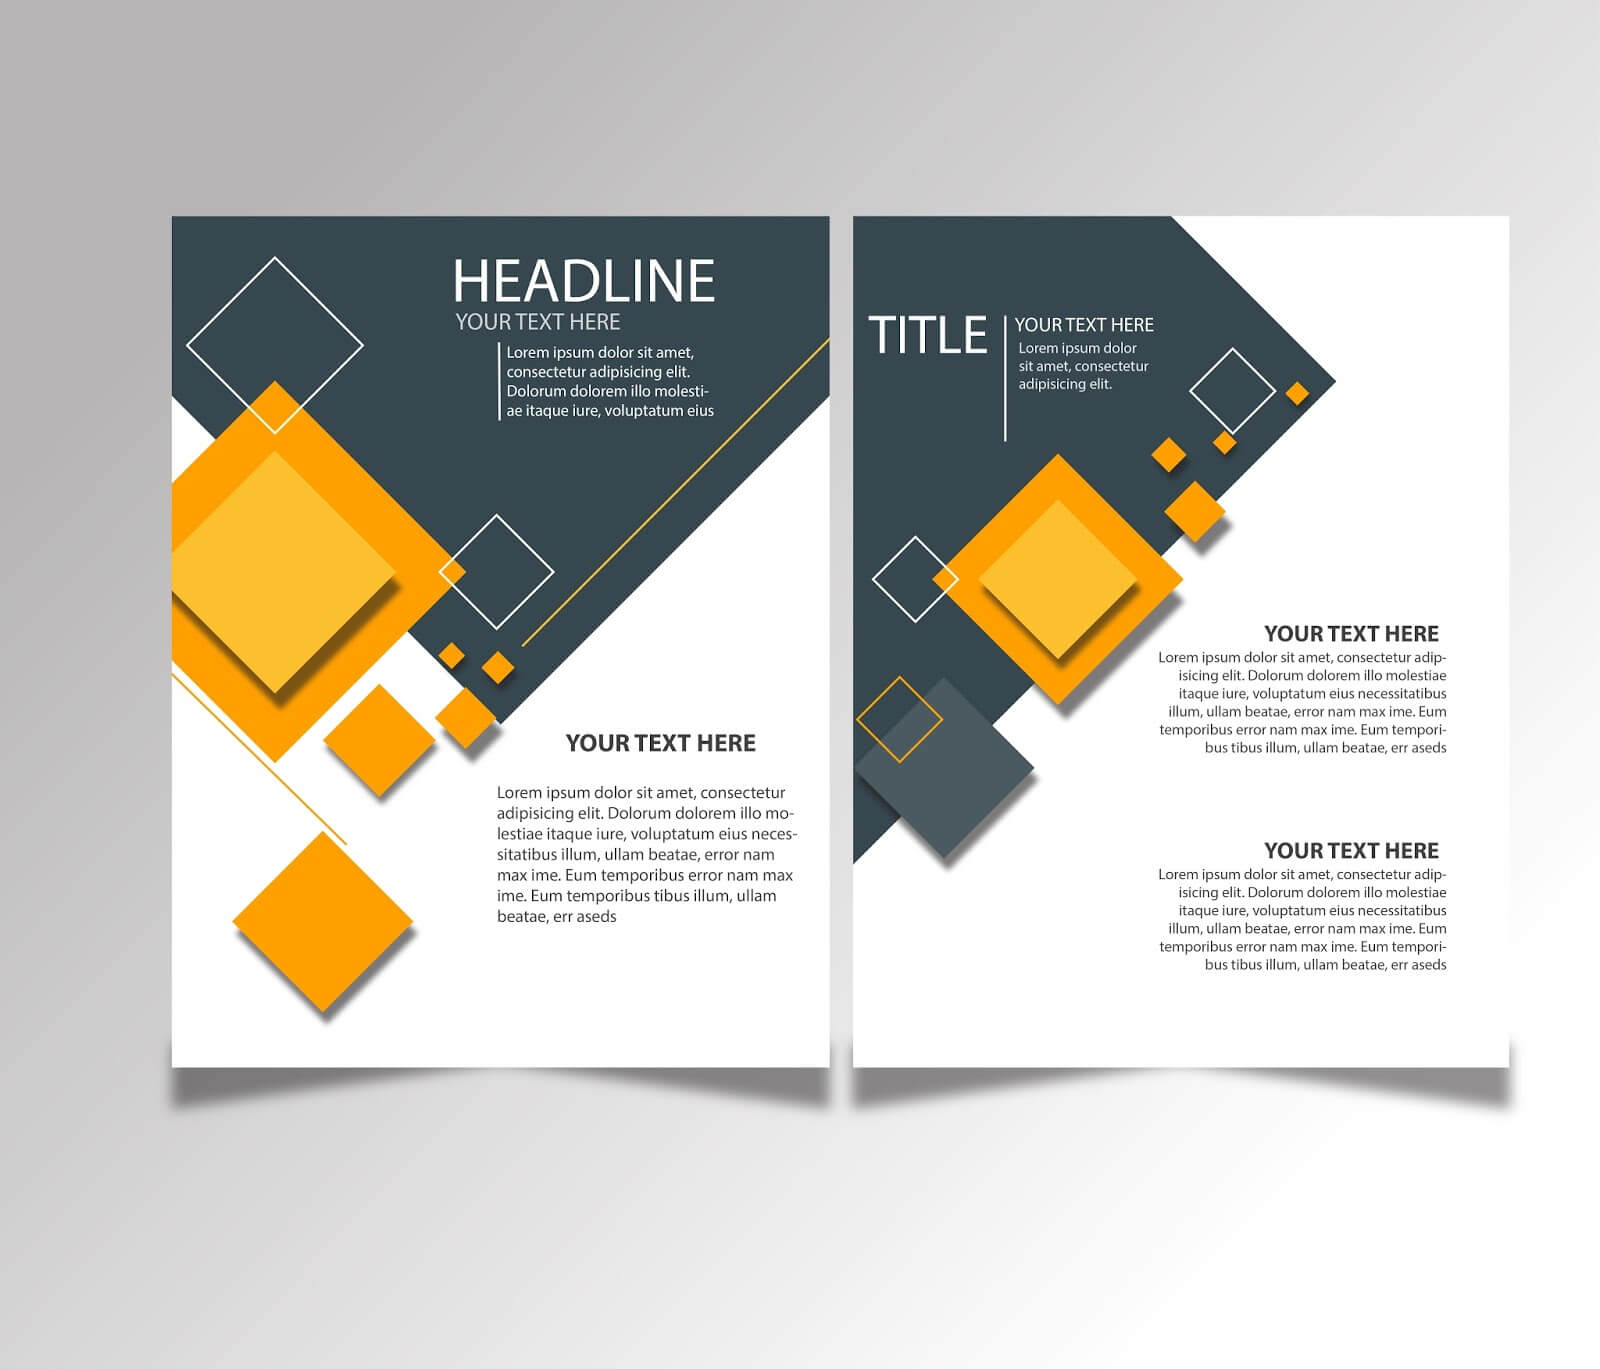 Free Download Brochure Design Templates Ai Files - Ideosprocess Intended For Brochure Templates Ai Free Download